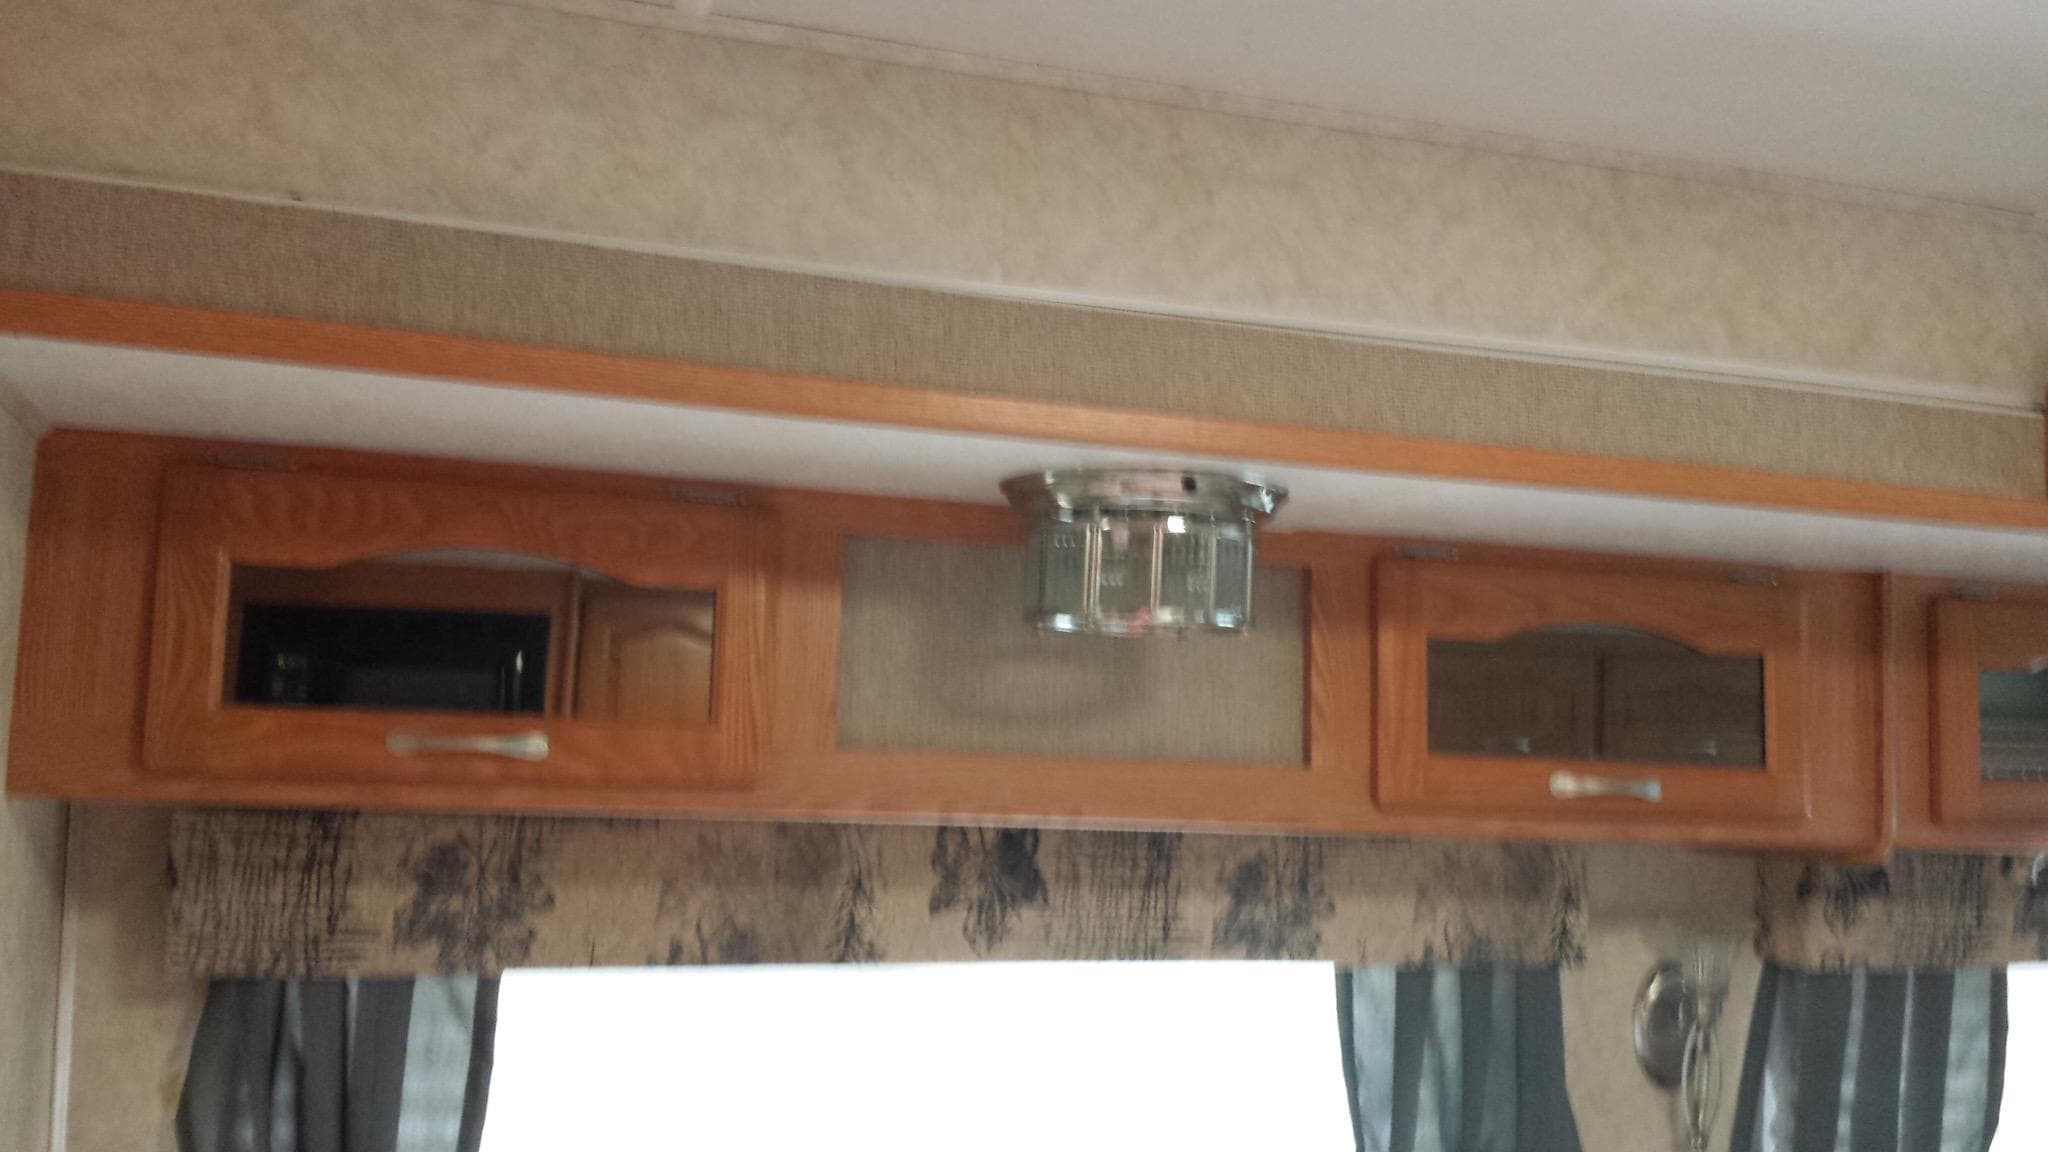 Kitchen Taps Jtf Top 25 Barrow County Ga Rv Rentals And Motorhome Rentals Outdoorsy